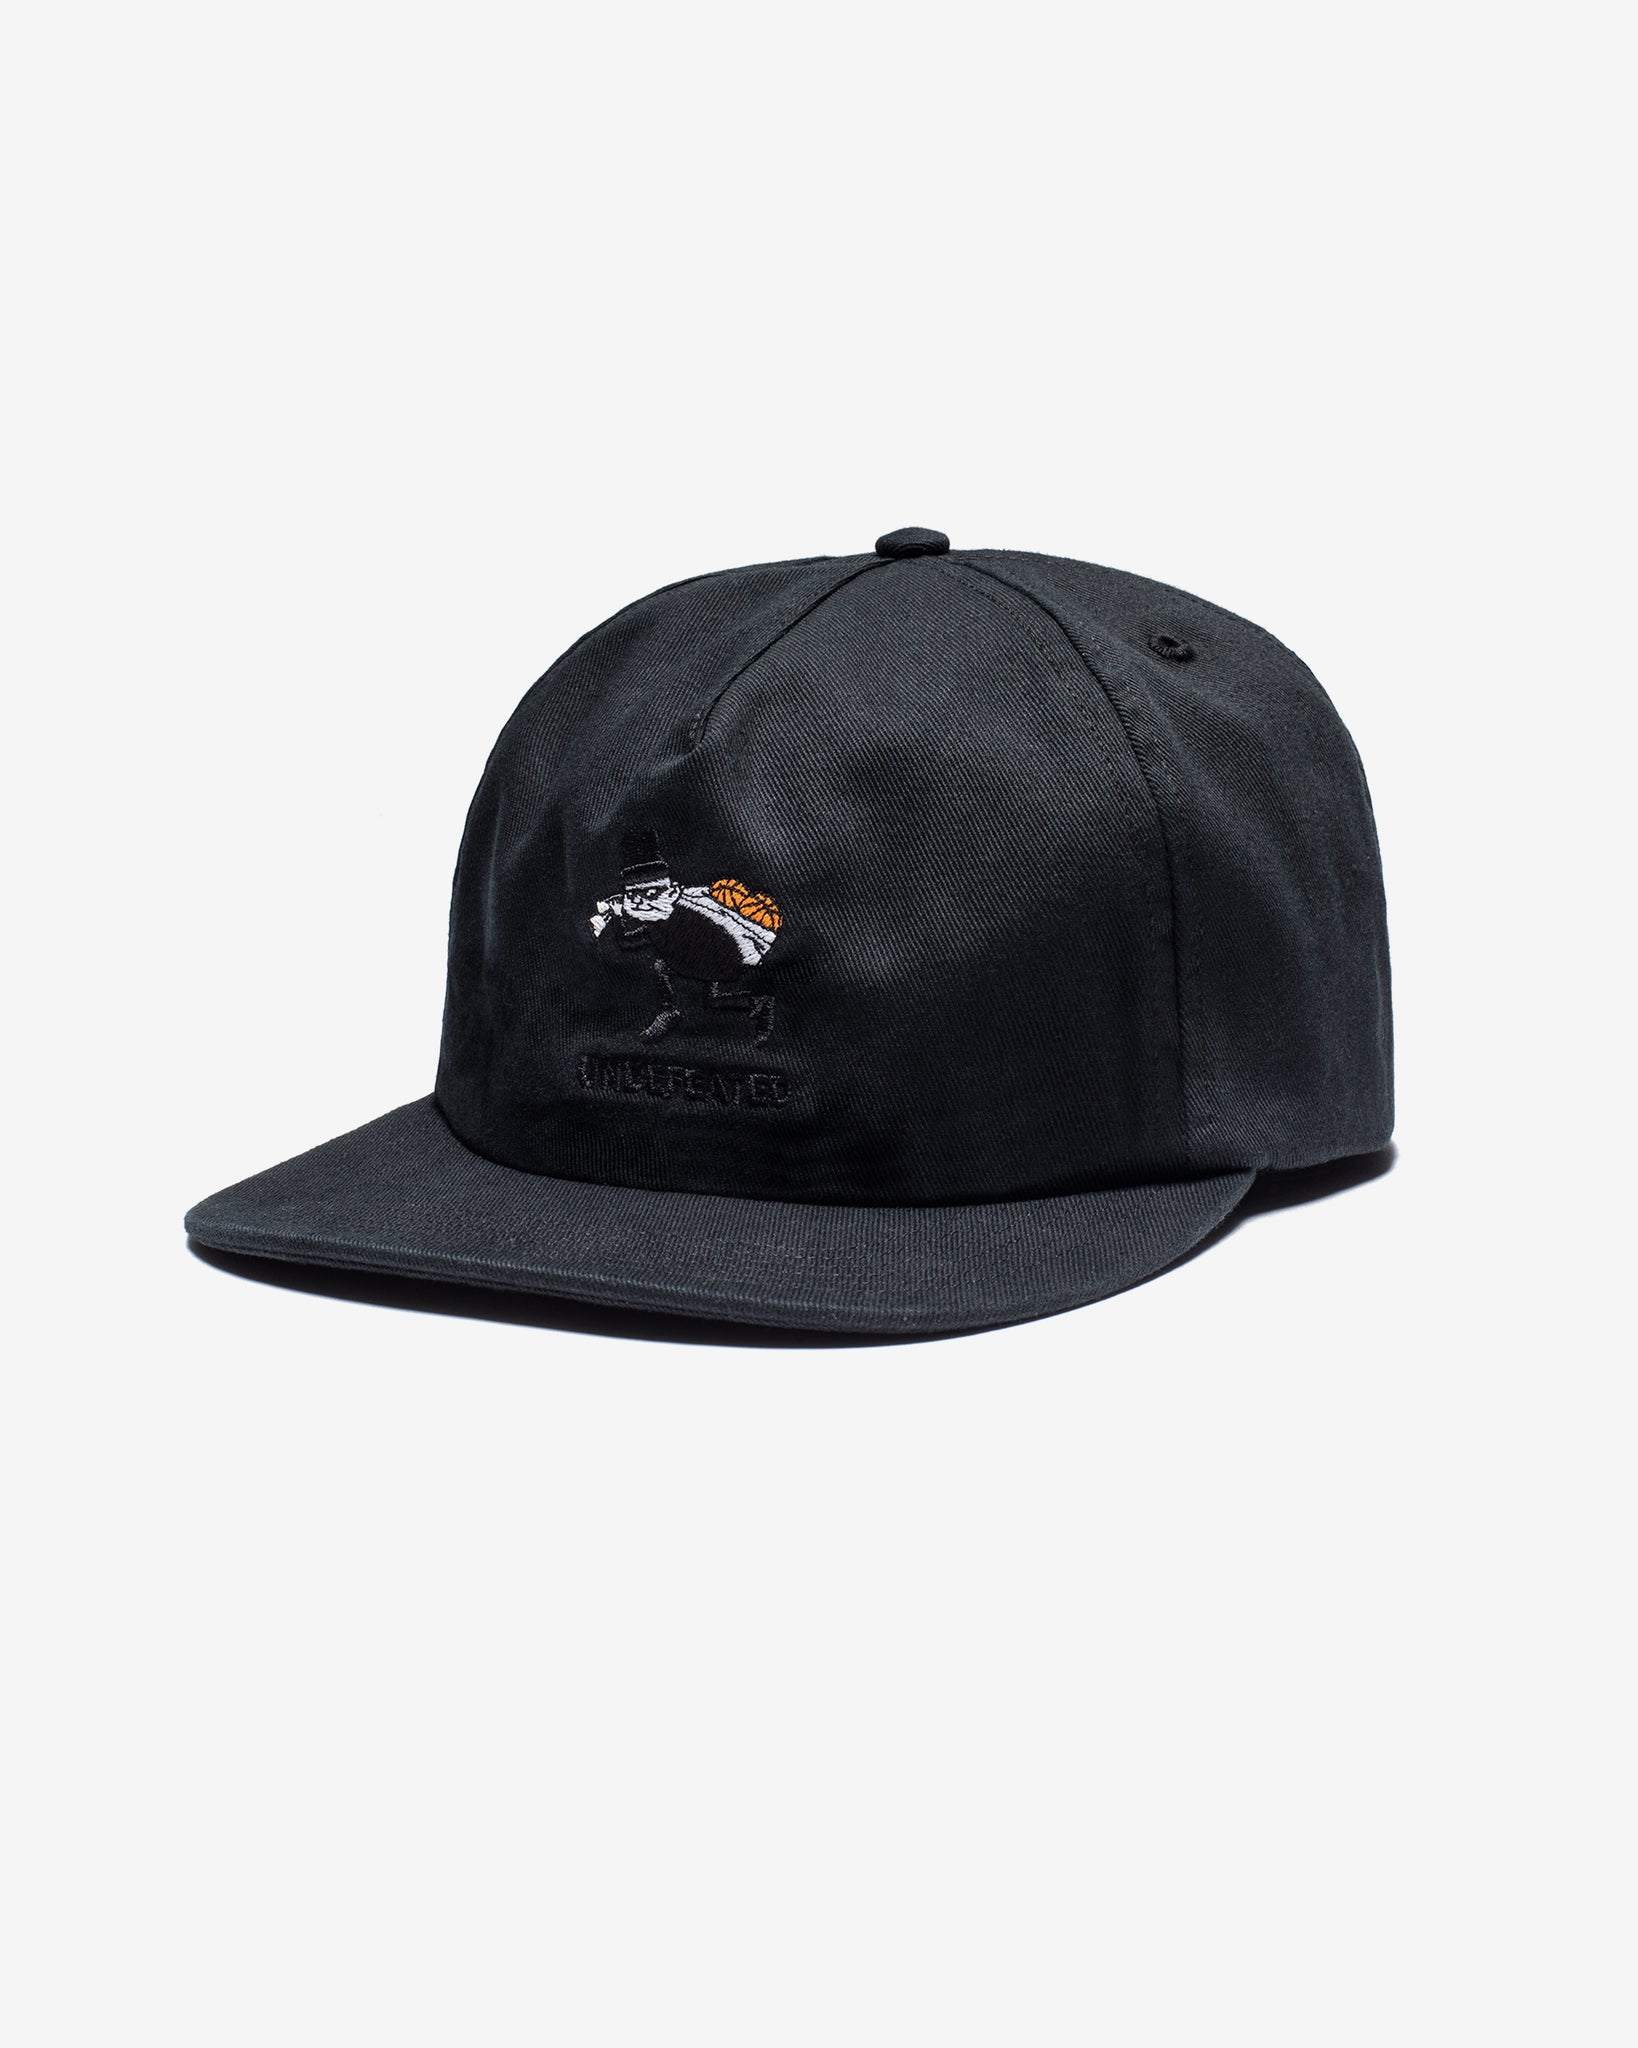 UNDEFEATED THIEF'S THEME SNAPBACK